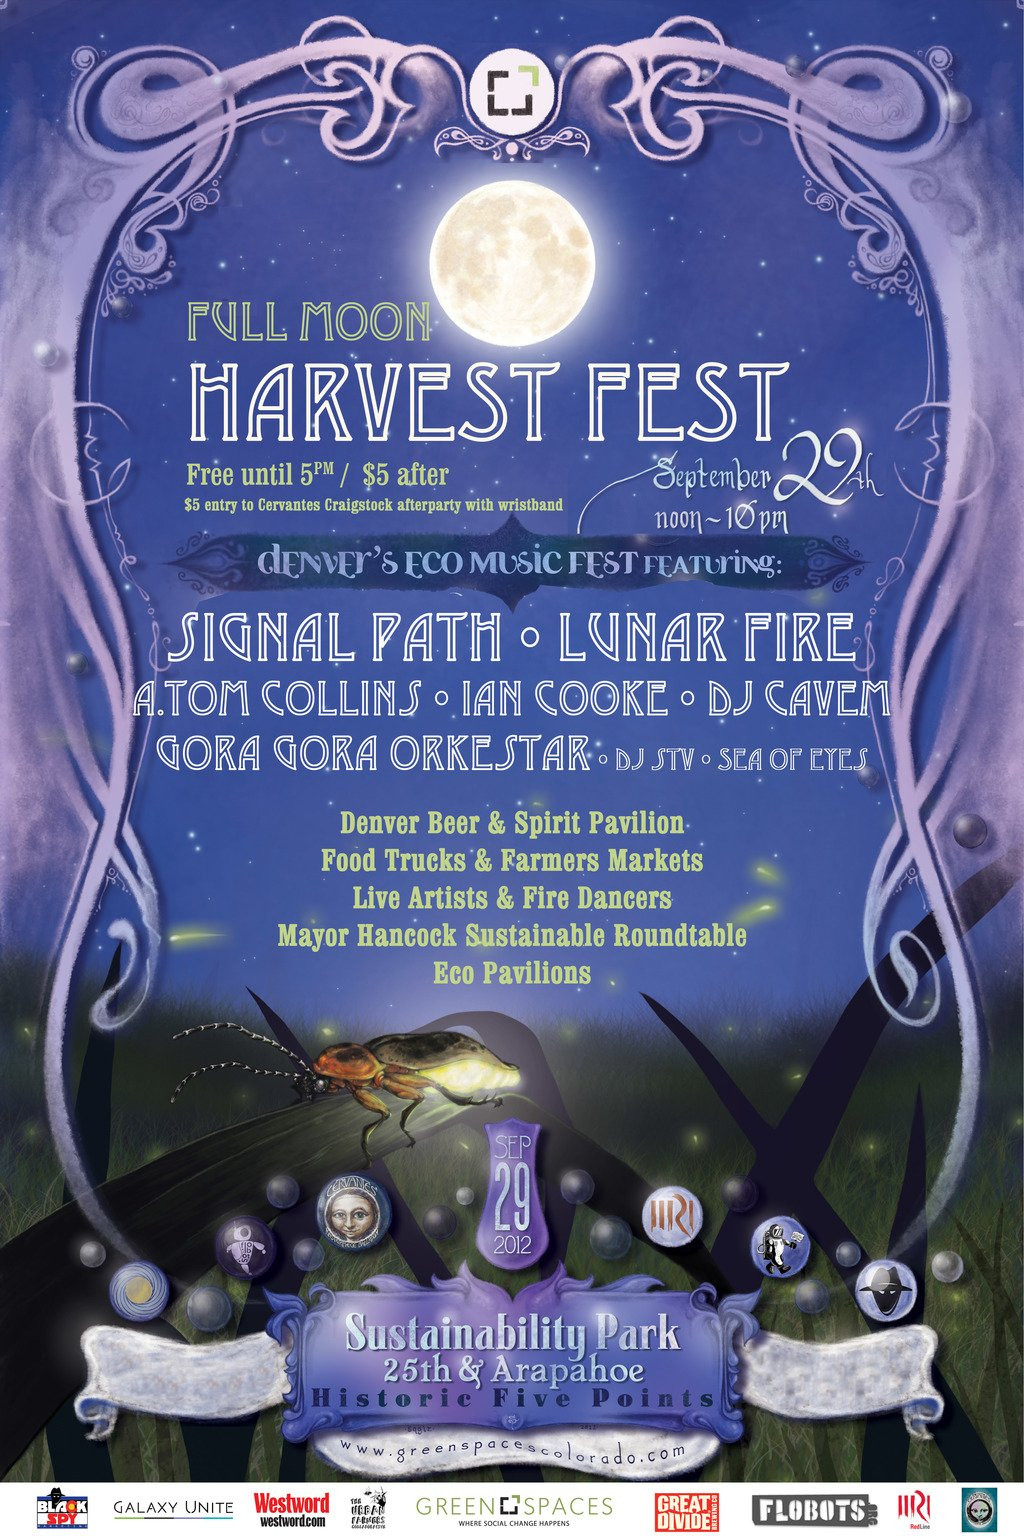 Photo provided courtesy of Green Space's Full Moon Harvest Festival